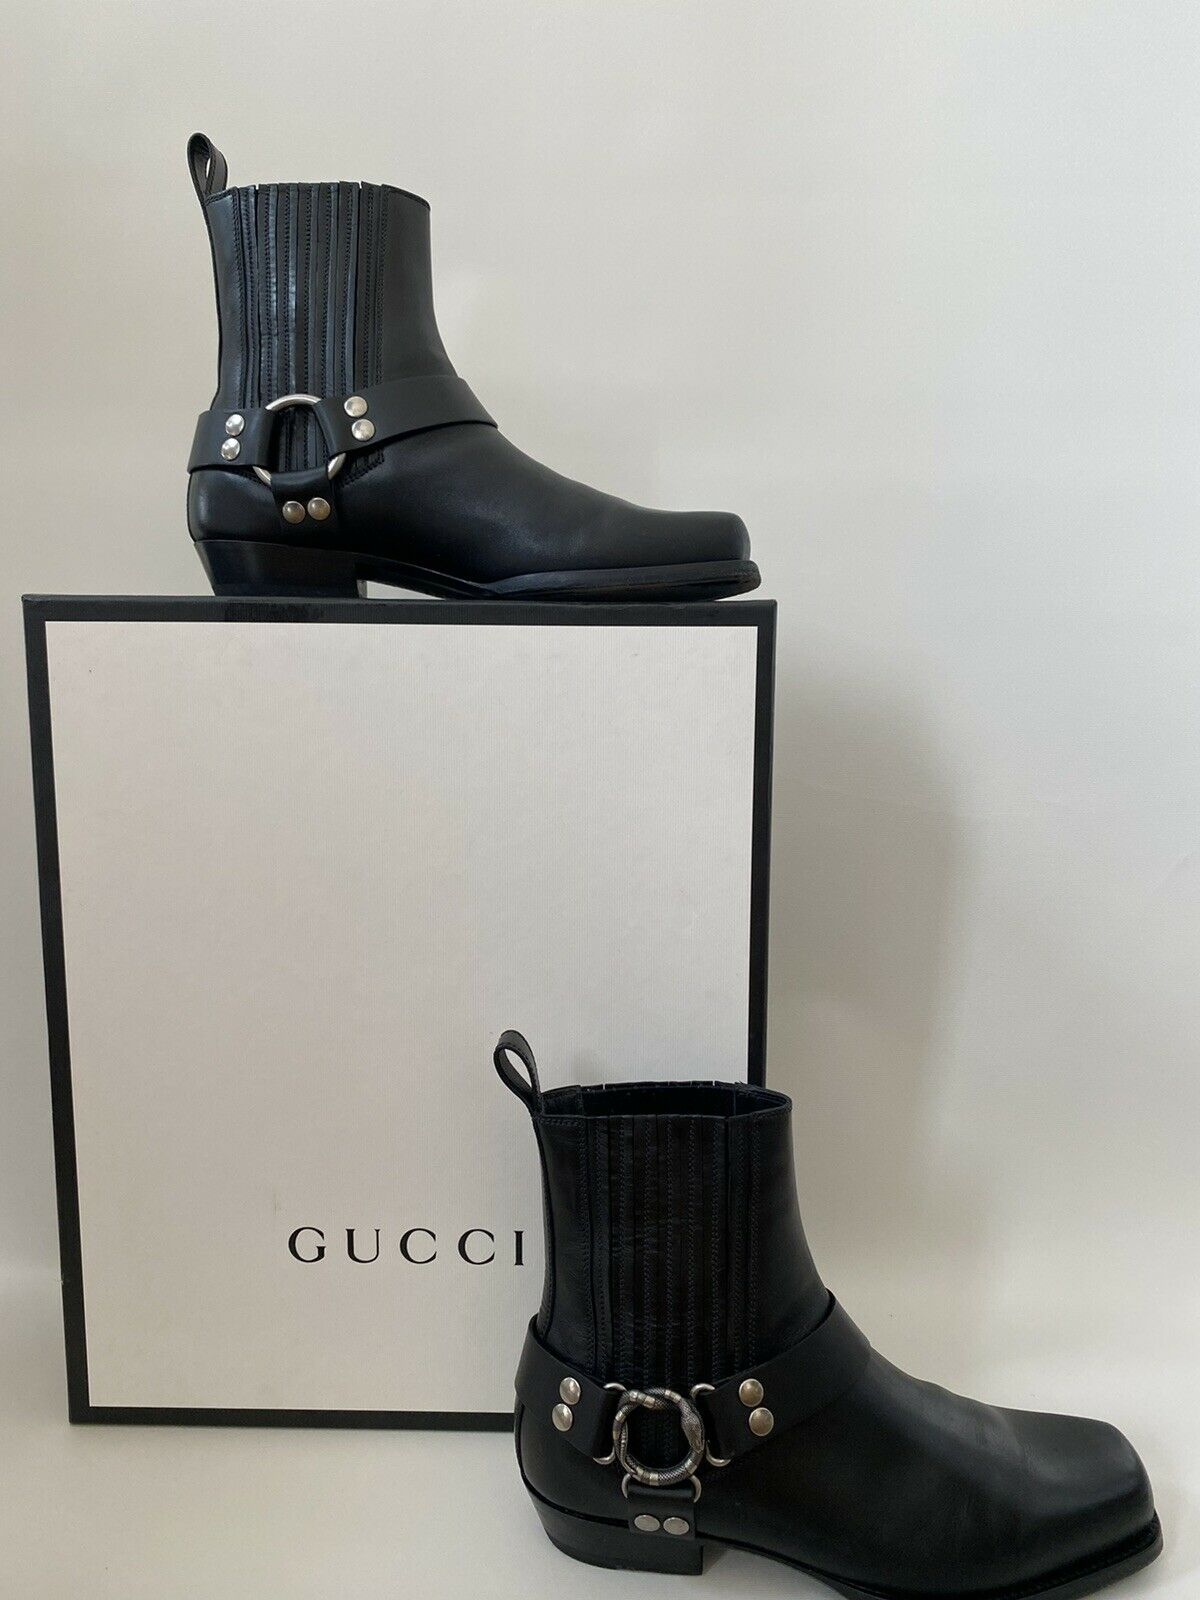 Gucci Men's Leather Boots With Snake Ring